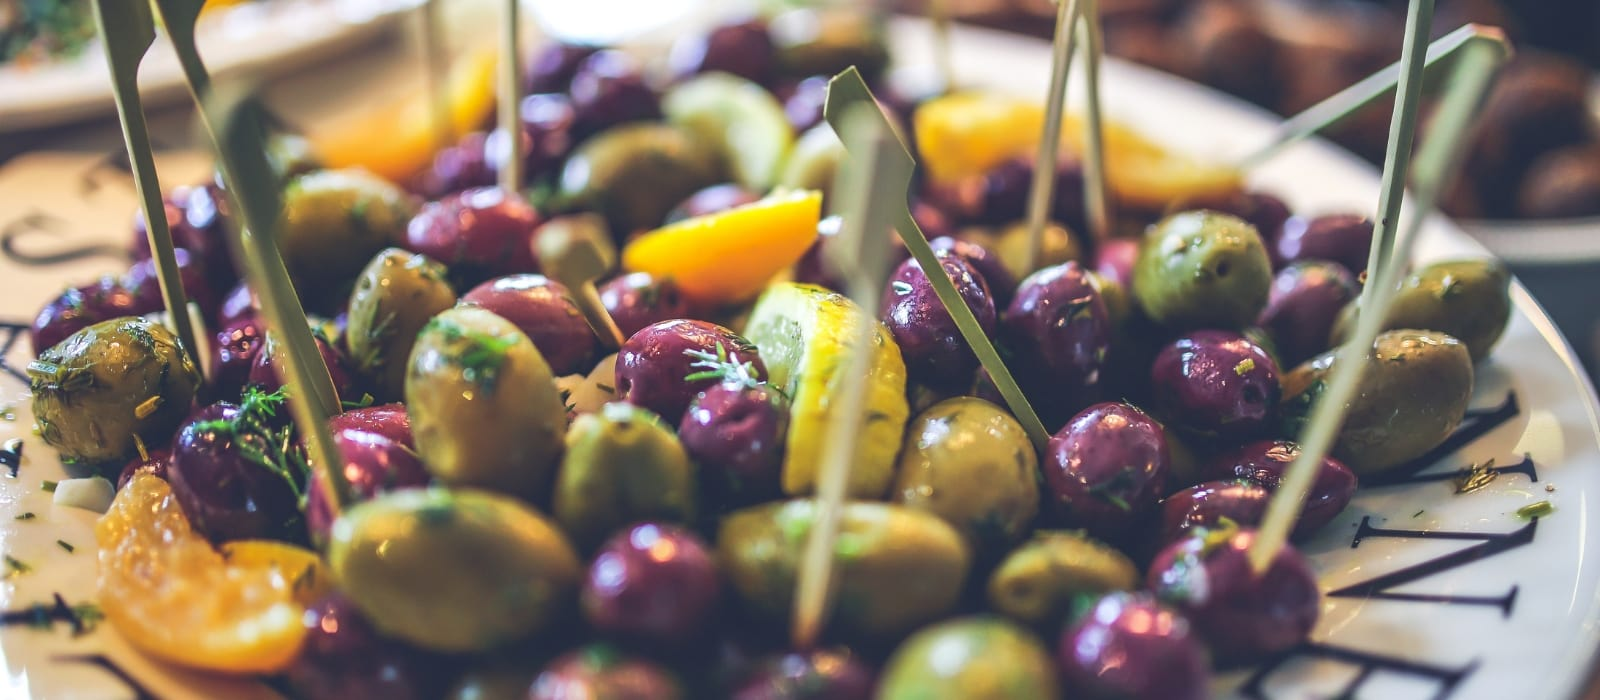 A Basic Guide to Olives: What to Know Before you Make Your Next Cheese Tray| Make Your Cheese Tray with Olives| How to Use Olives on a Cheese Tray| How Olives Go with Wine| #olives #cheeseplate #wine&cheese #wine #cheesetray